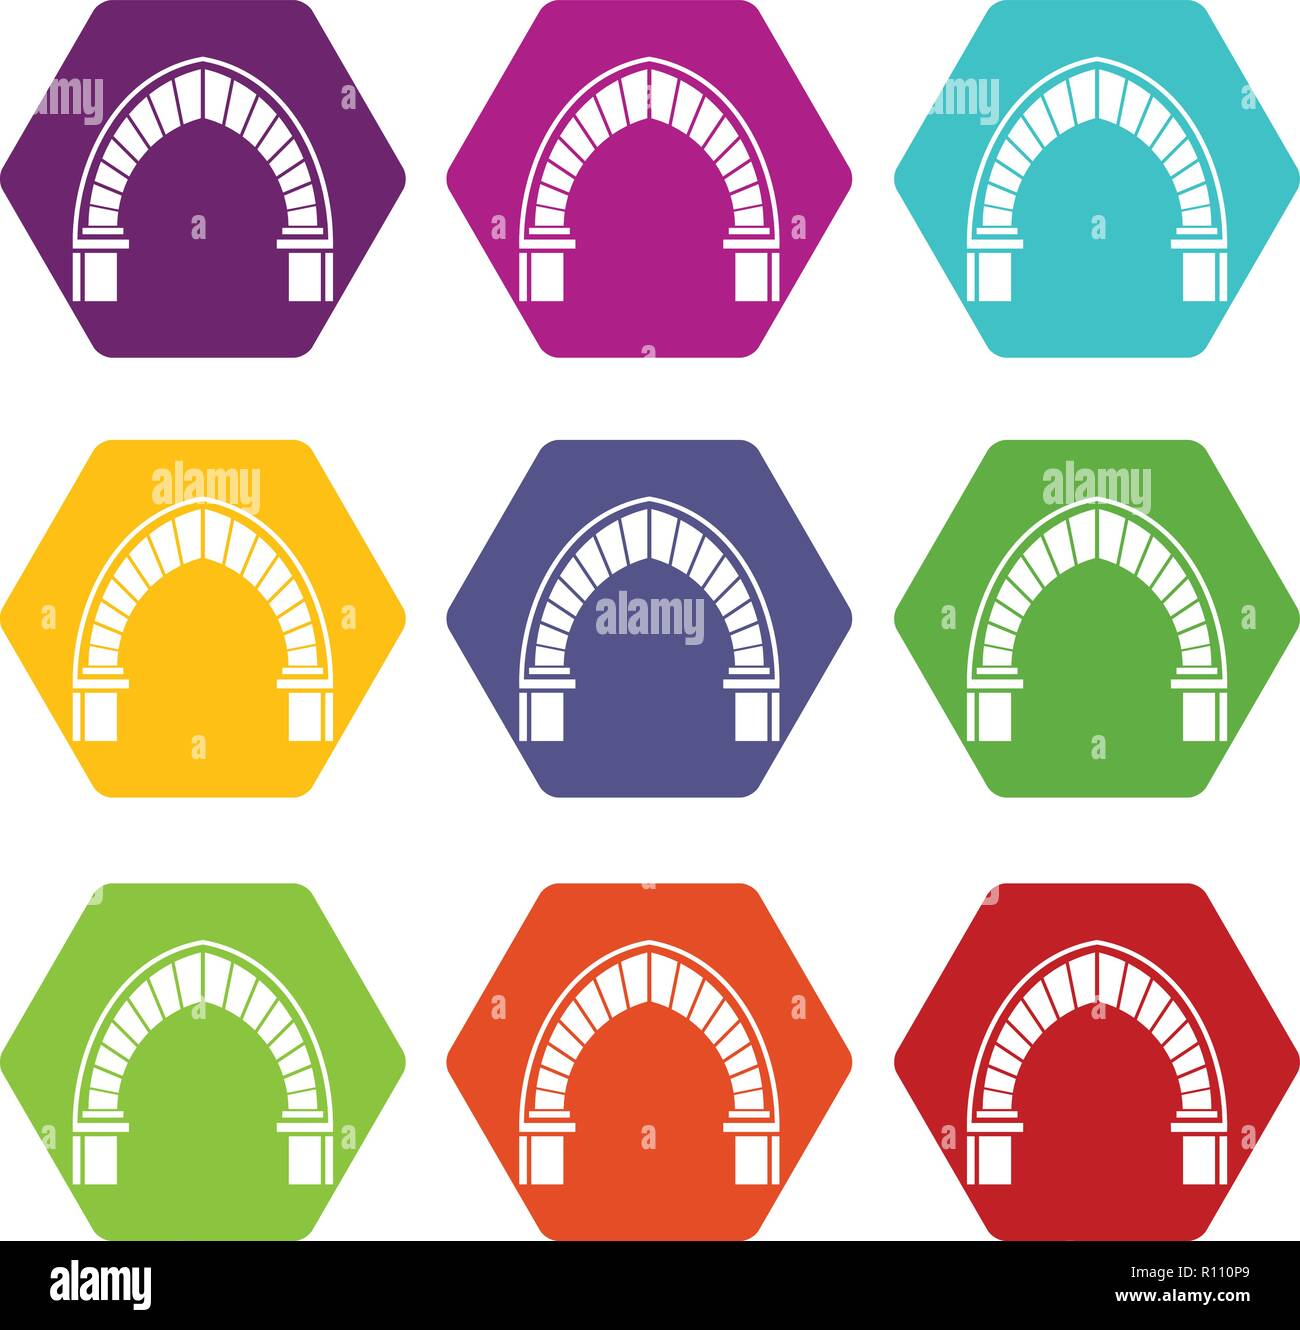 Stone arch icons set 9 vector - Stock Image